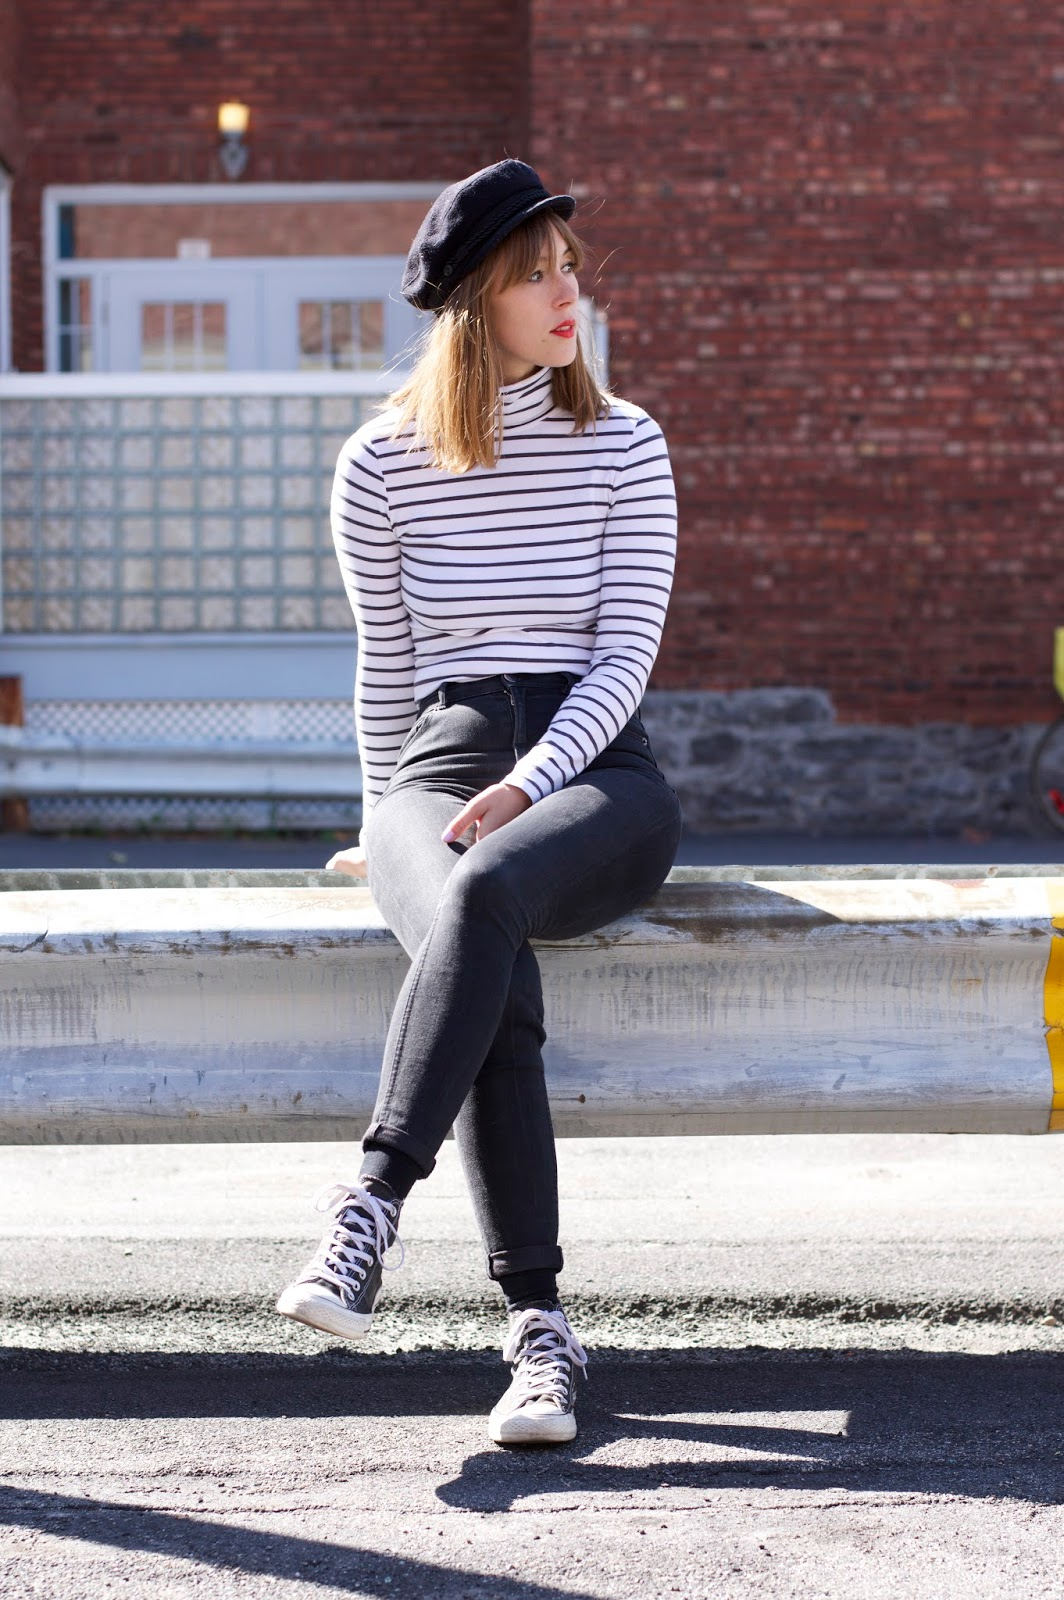 A simple outfit in stripes and jeans